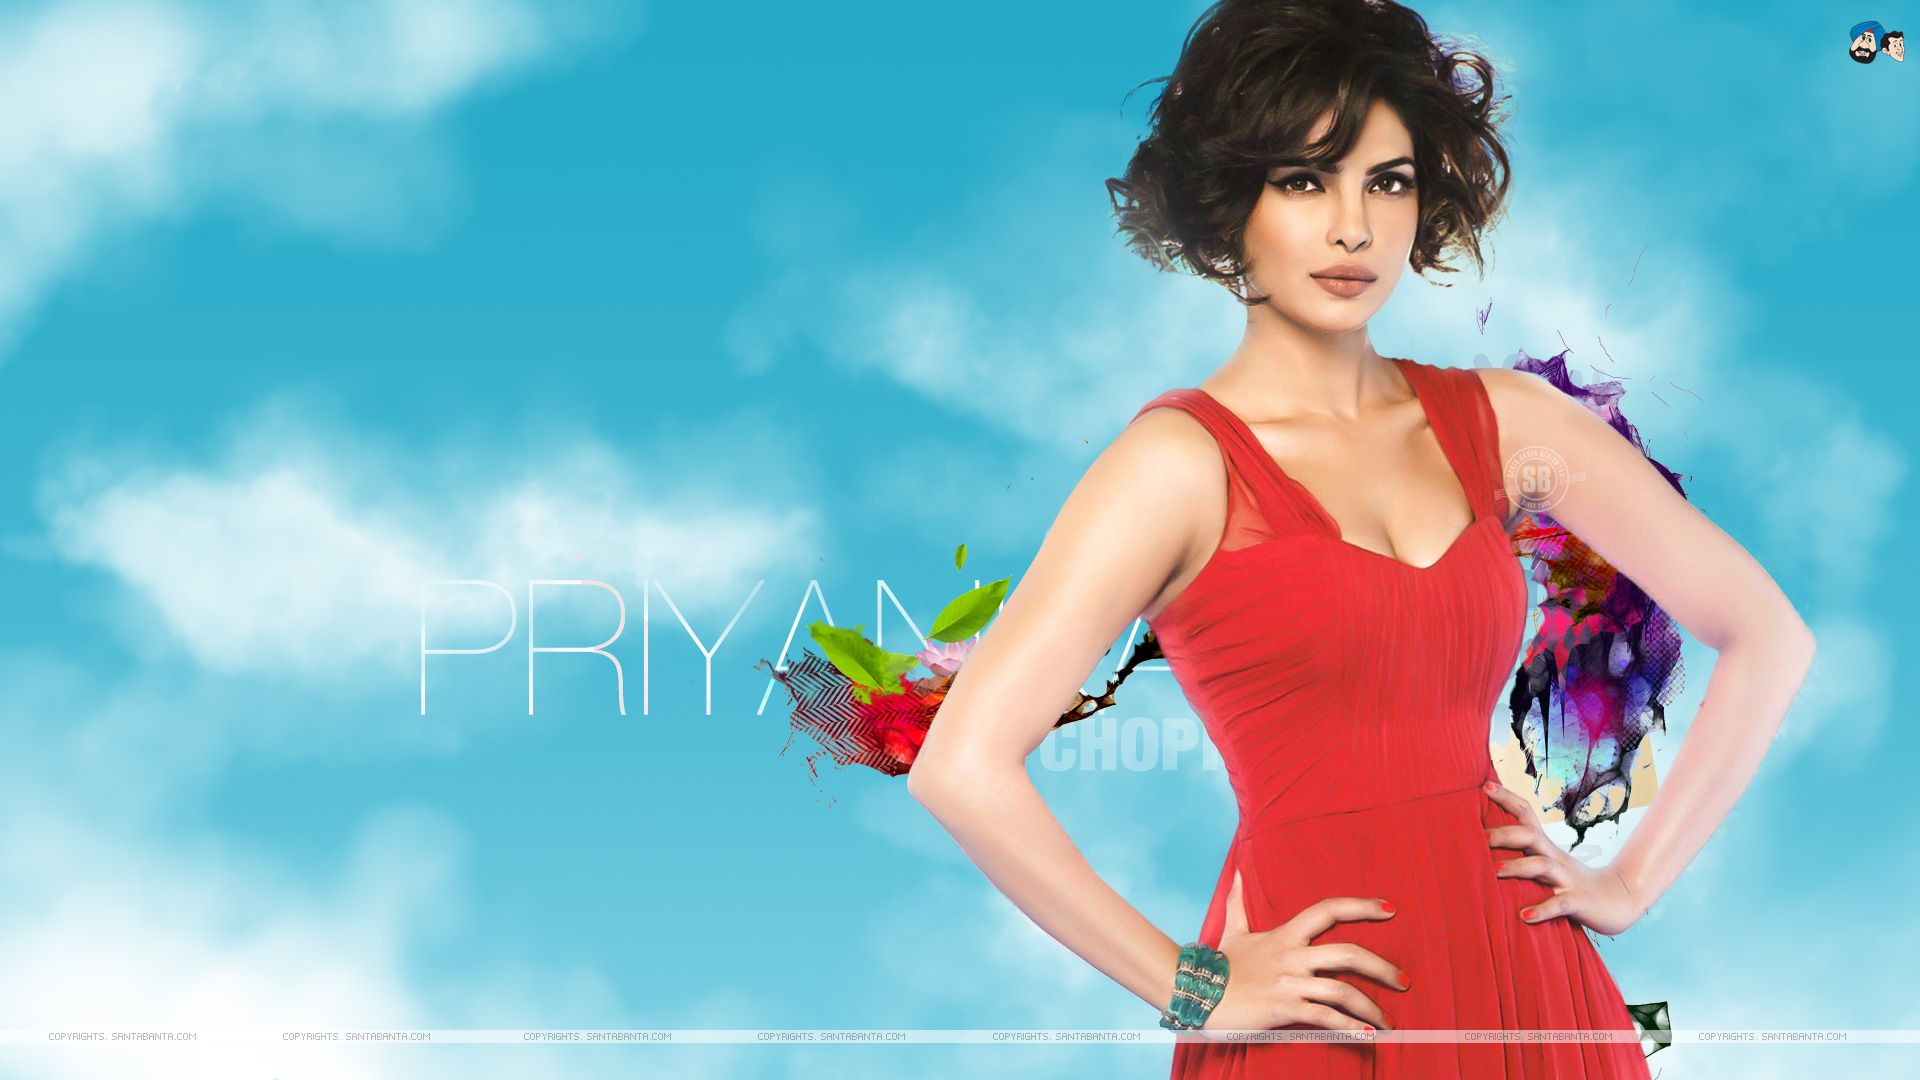 priyanka chopra hot wallpaper | priyanka chopra wallpapers